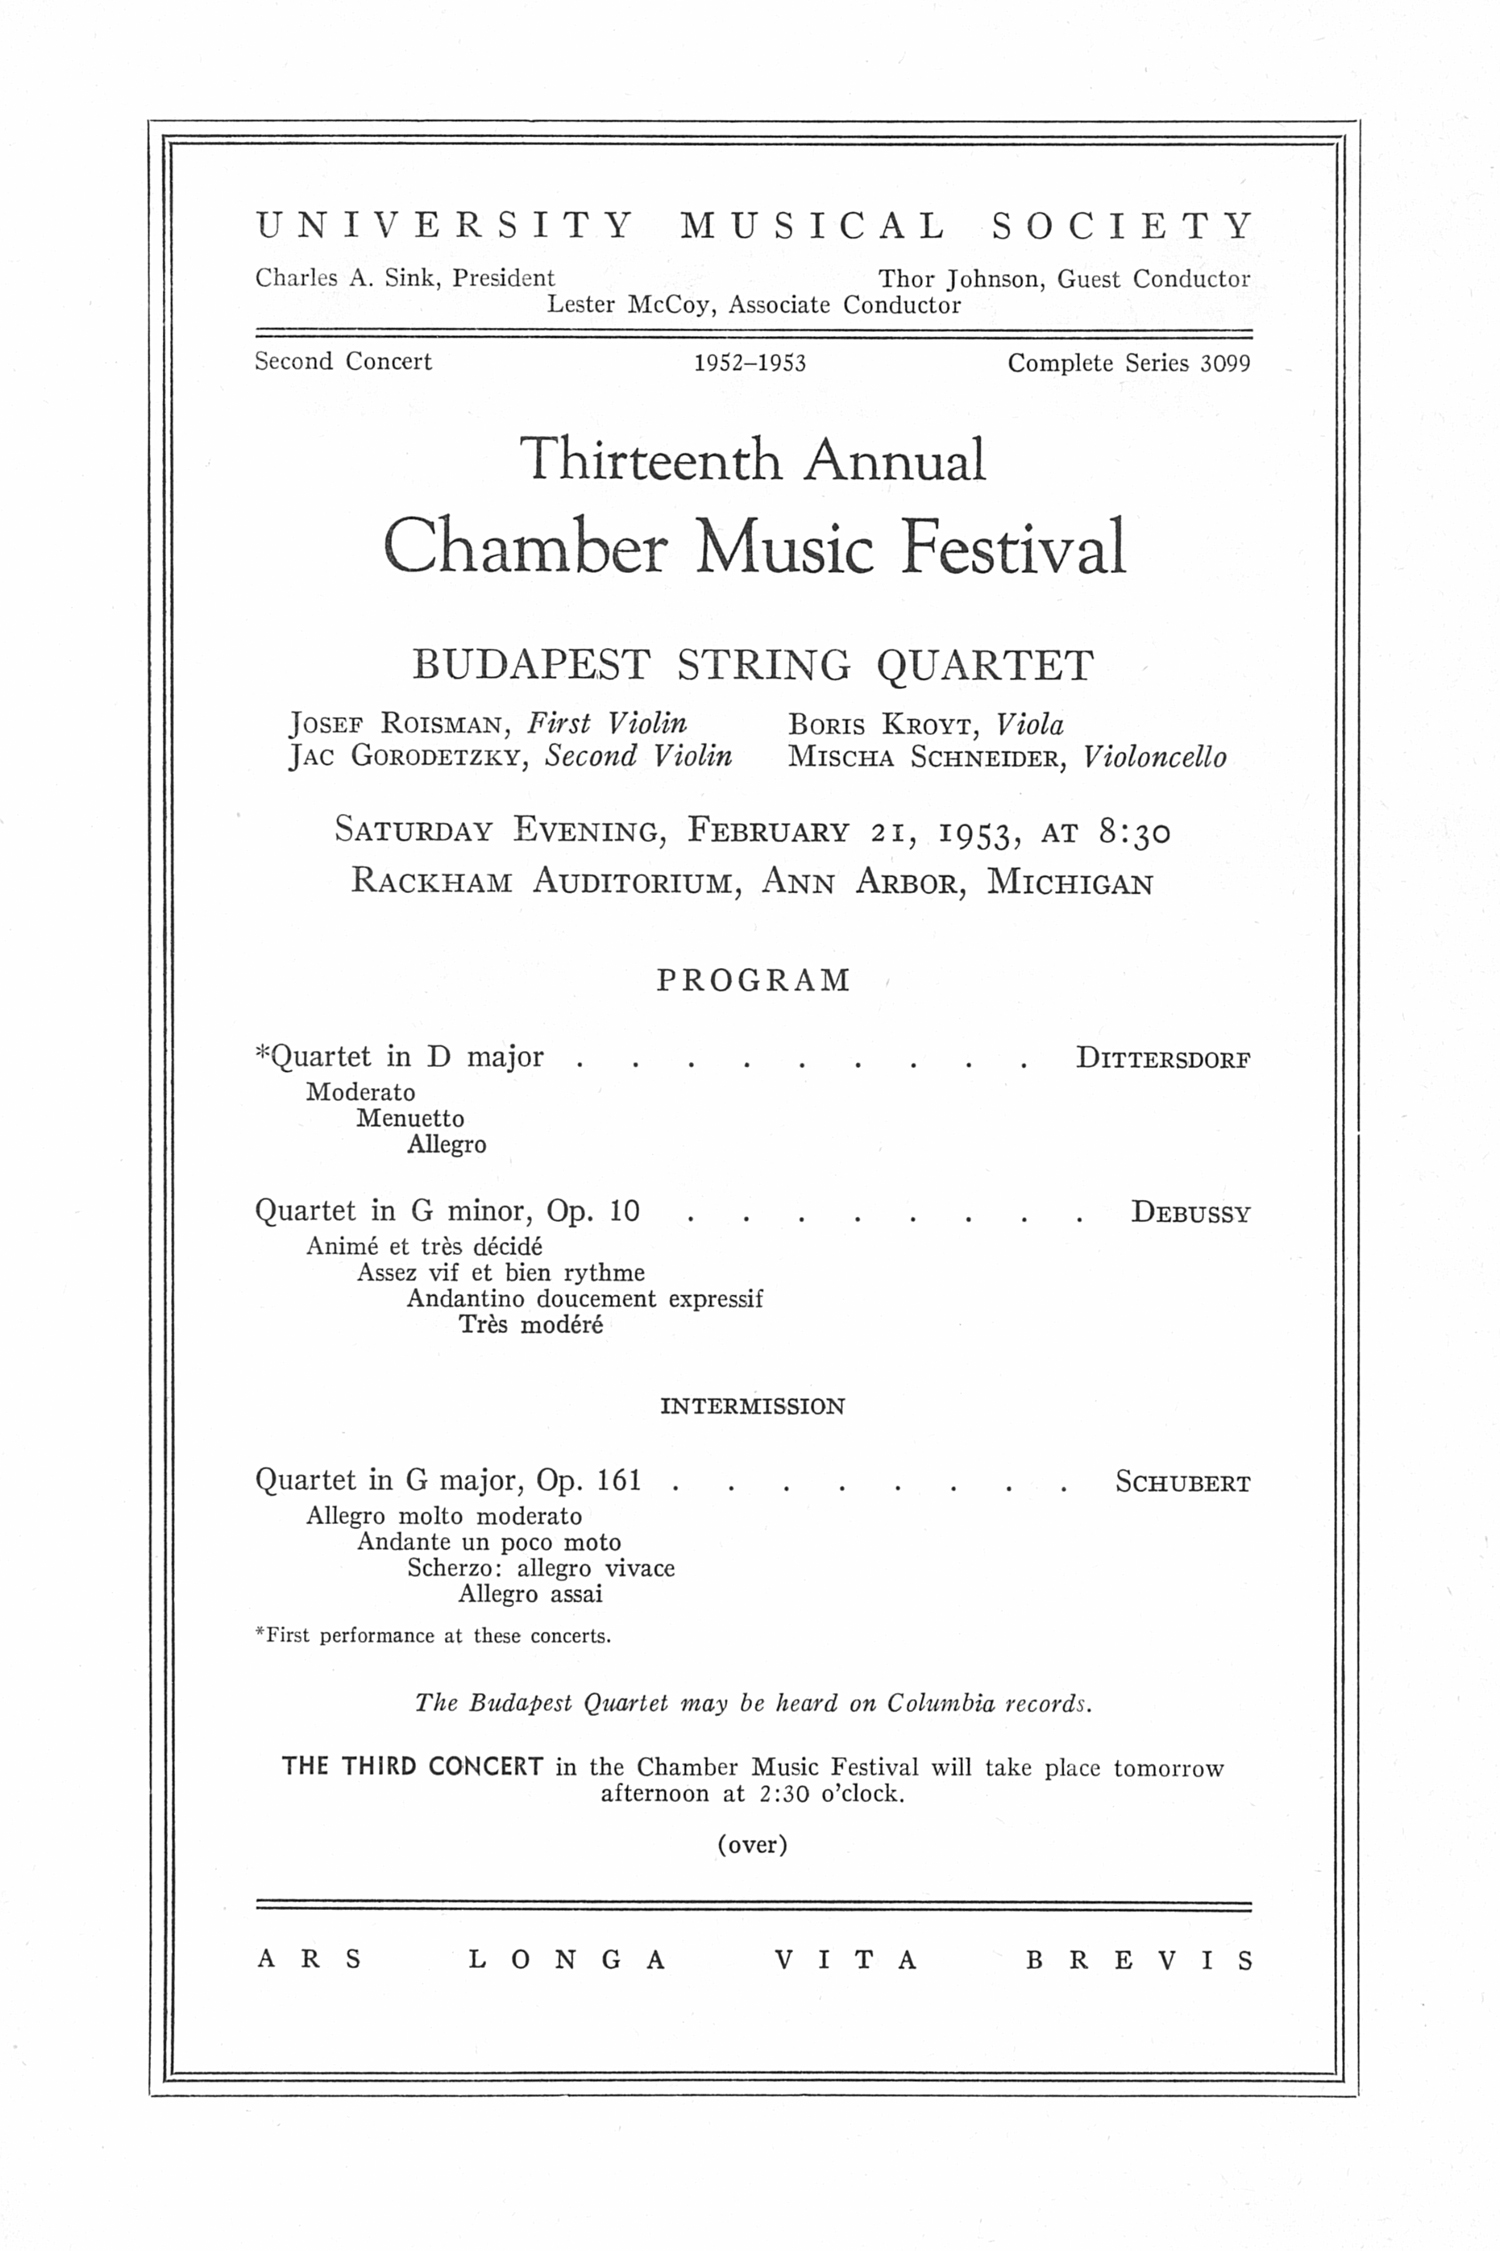 UMS Concert Program, February 21, 1953: Thirteenth Annual Chamber Music Festival -- Budapest String Quartet image